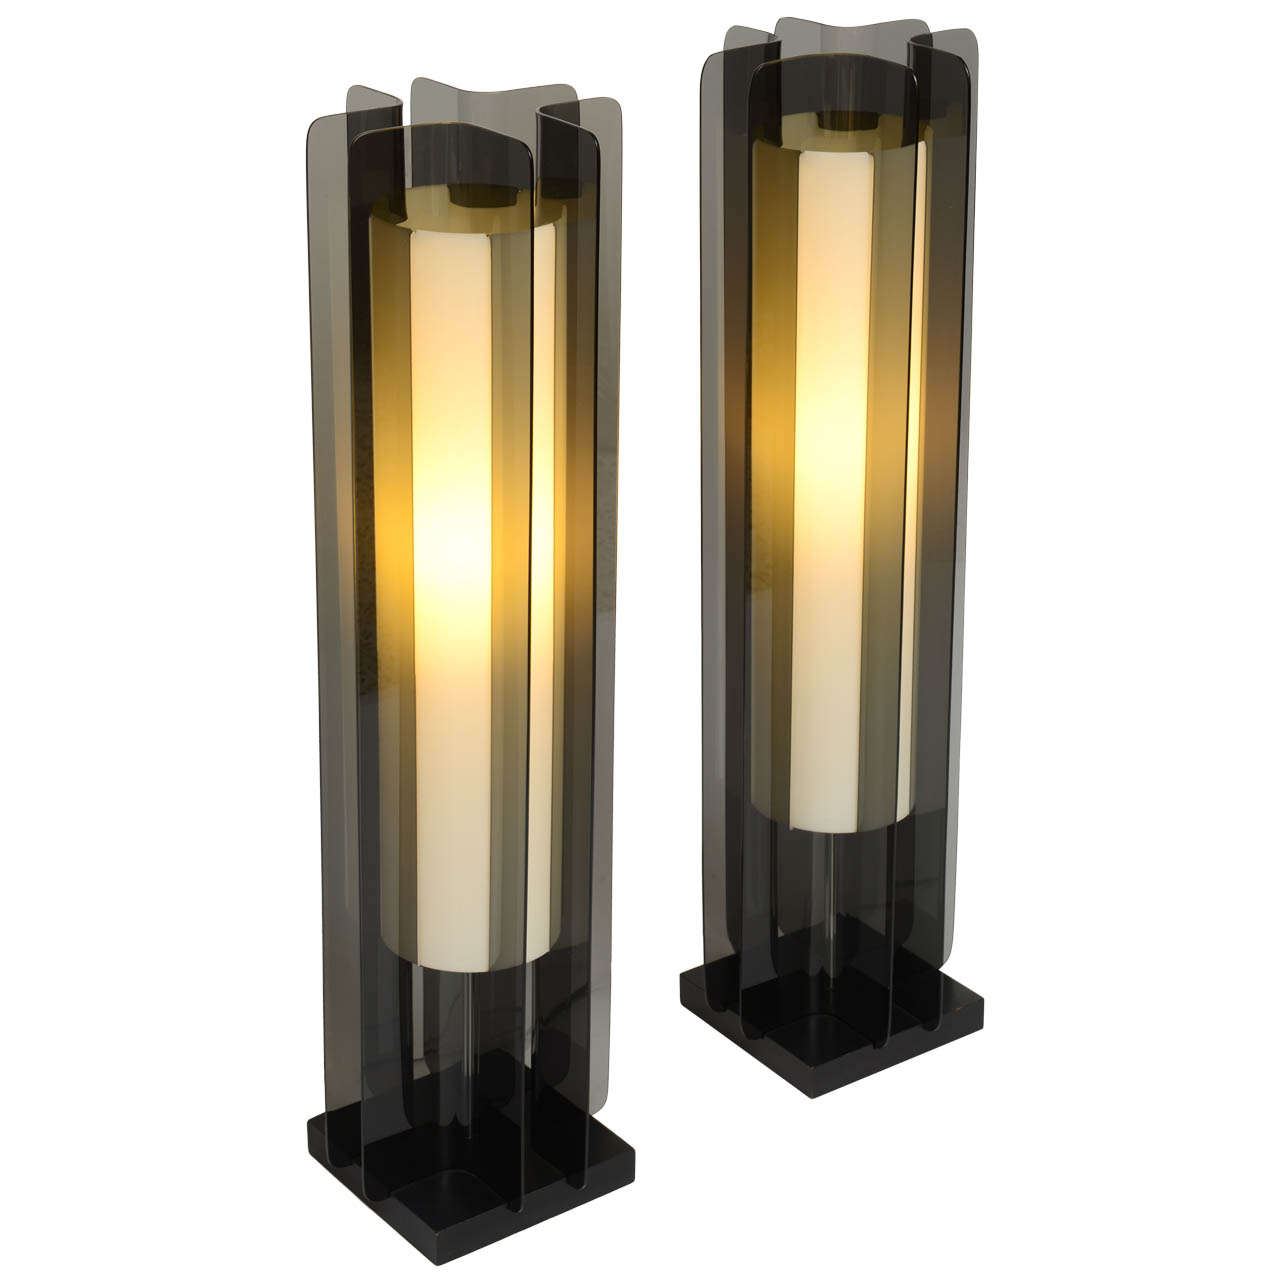 Exceptional smoked lucite tower table lamps modeline at 1stdibs exceptional smoked lucite tower table lamps modeline 1 geotapseo Images